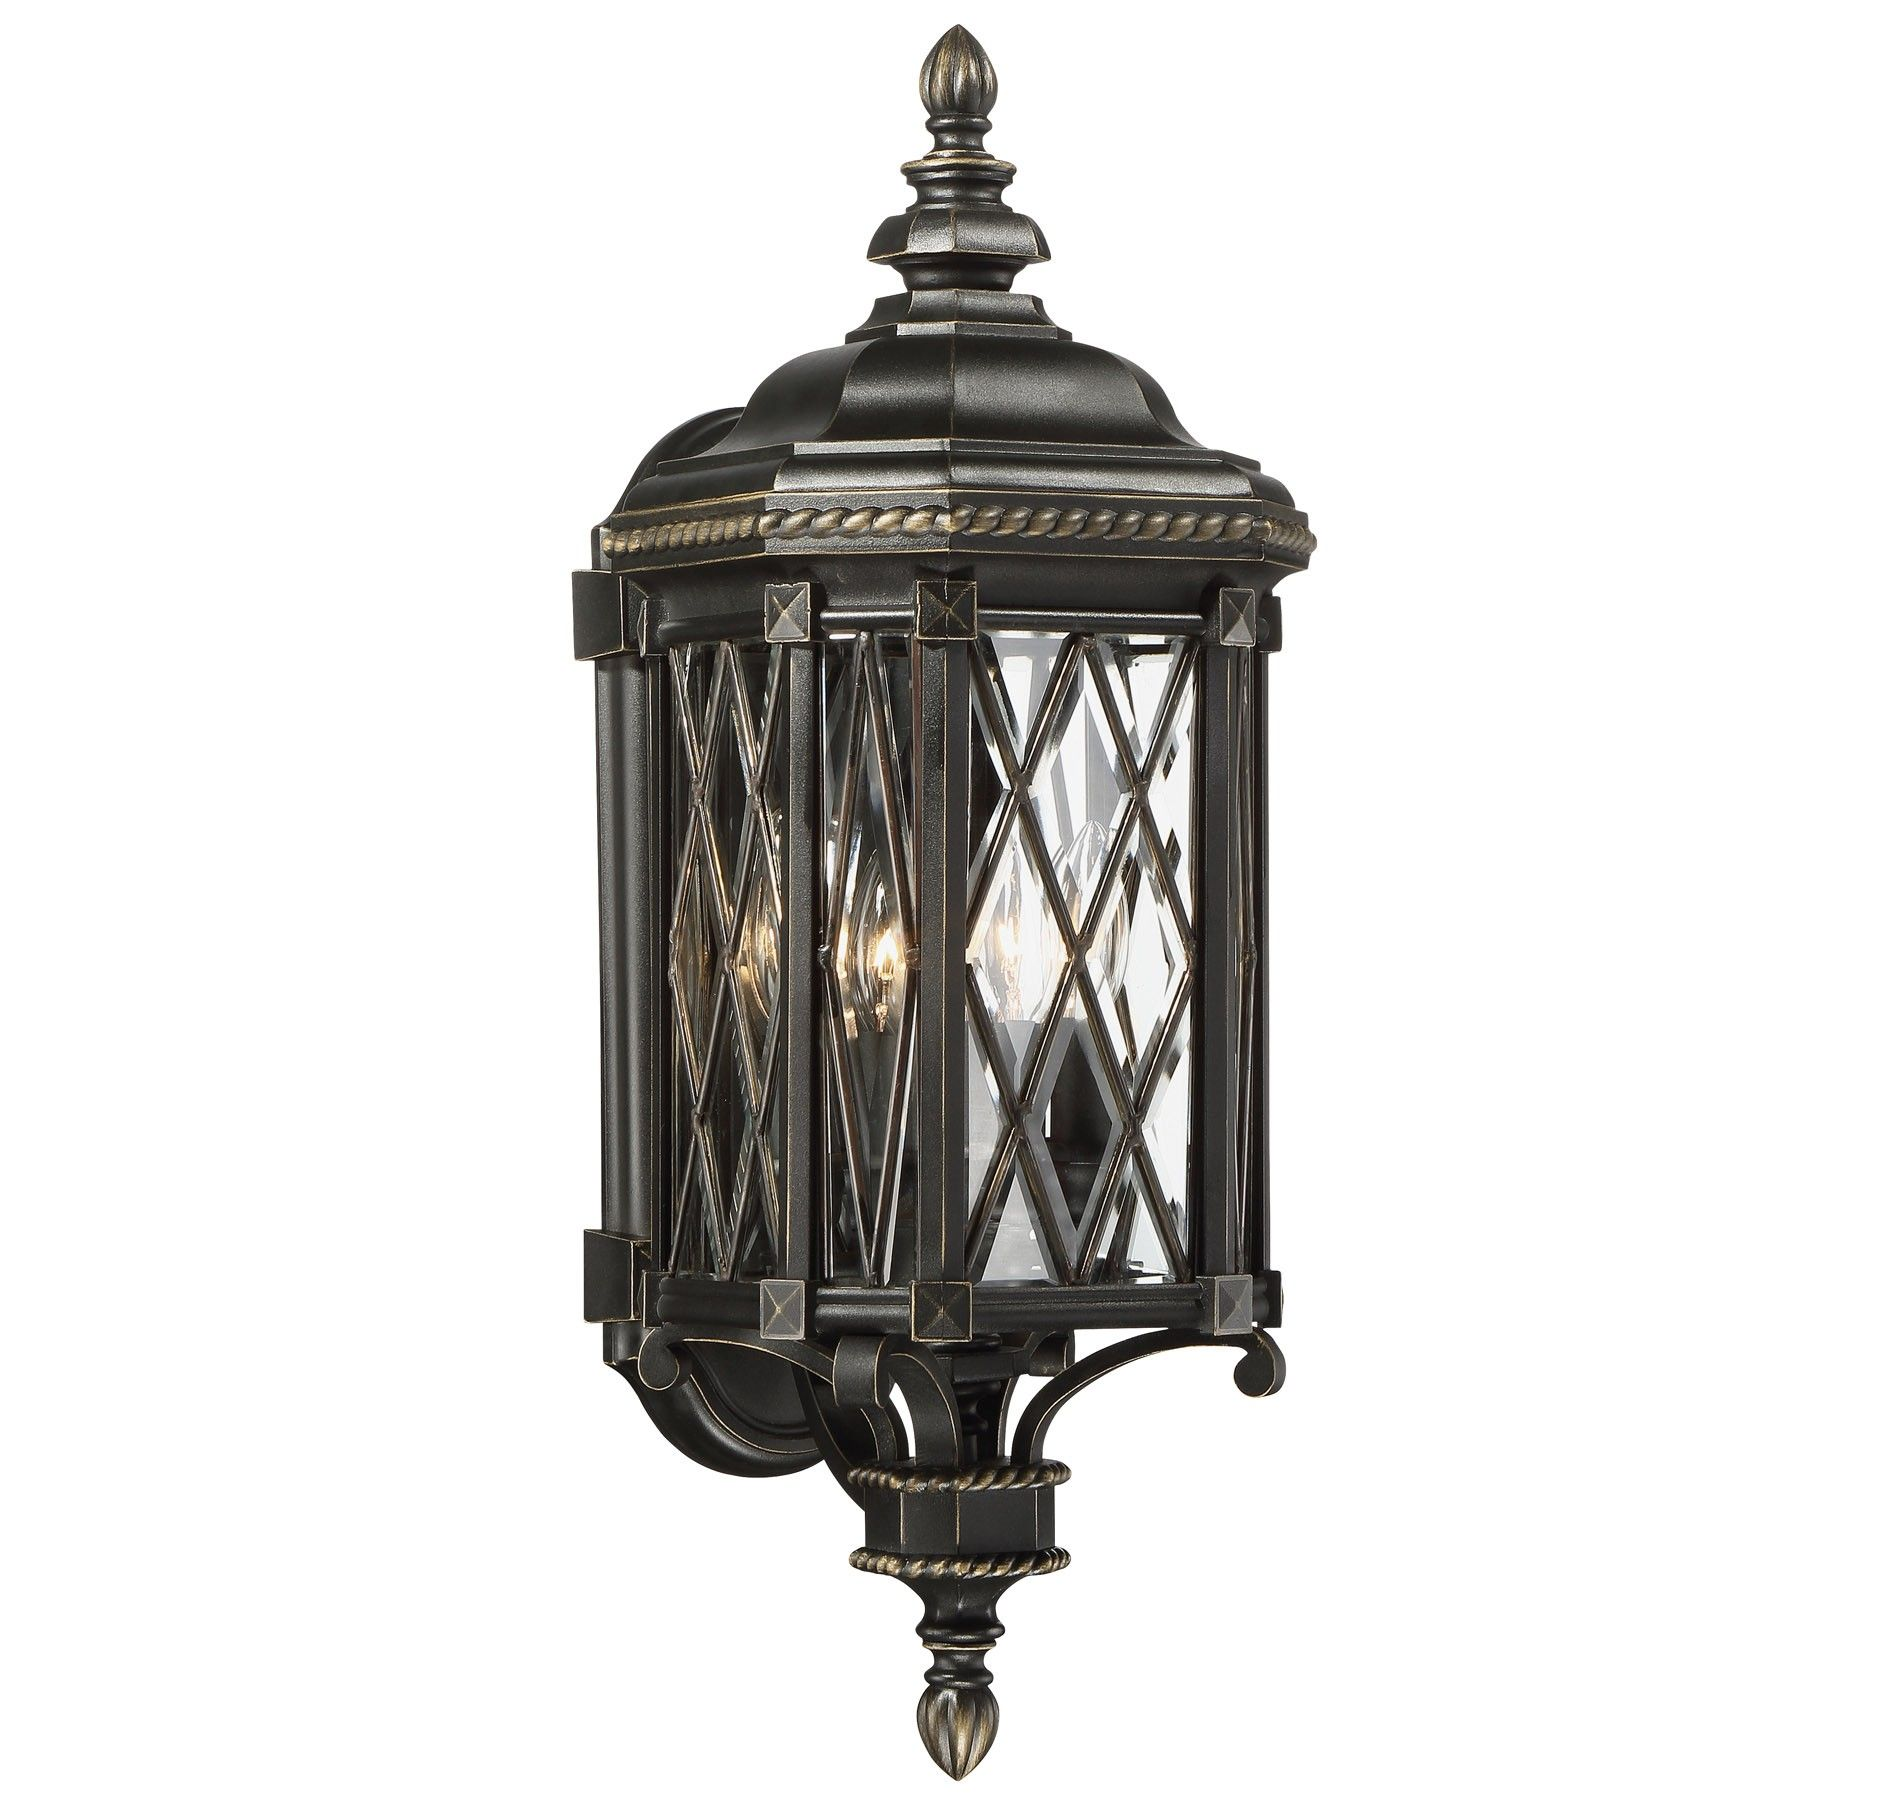 The great outdoors bexley manor 4 light outdoor wall lantern in black a stately outdoor lighting look is yours with the great outdoors bexley manor features clear glass a lattice pattern braided rope details mozeypictures Choice Image